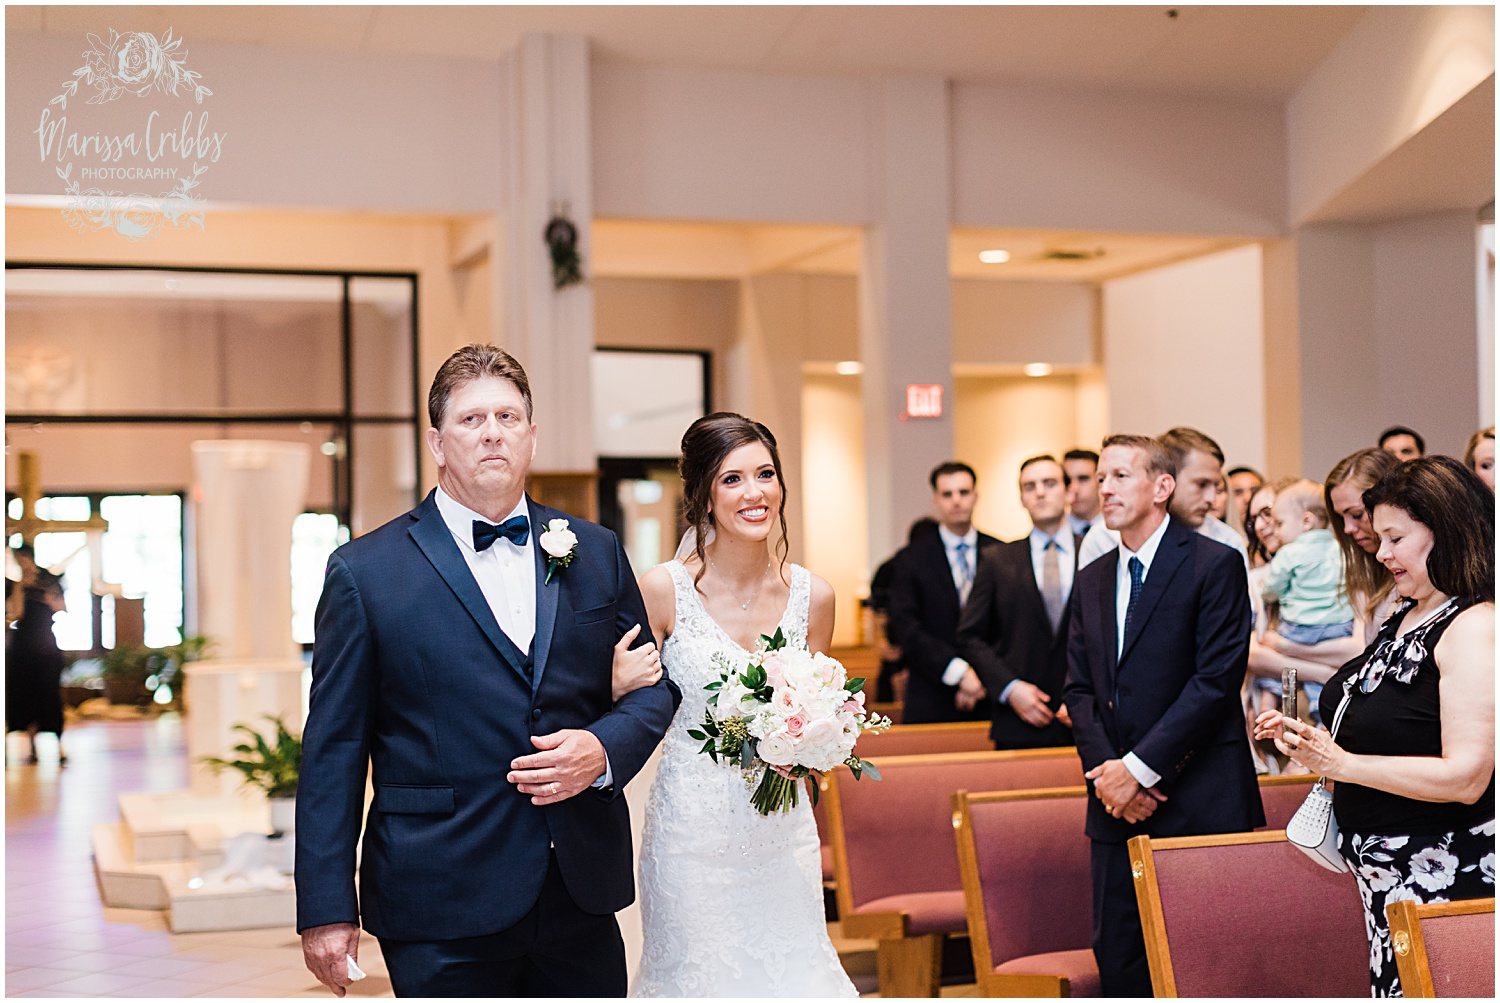 MEGAN & DEREK WEDDING BLOG | MARISSA CRIBBS PHOTOGRAPHY_8130.jpg